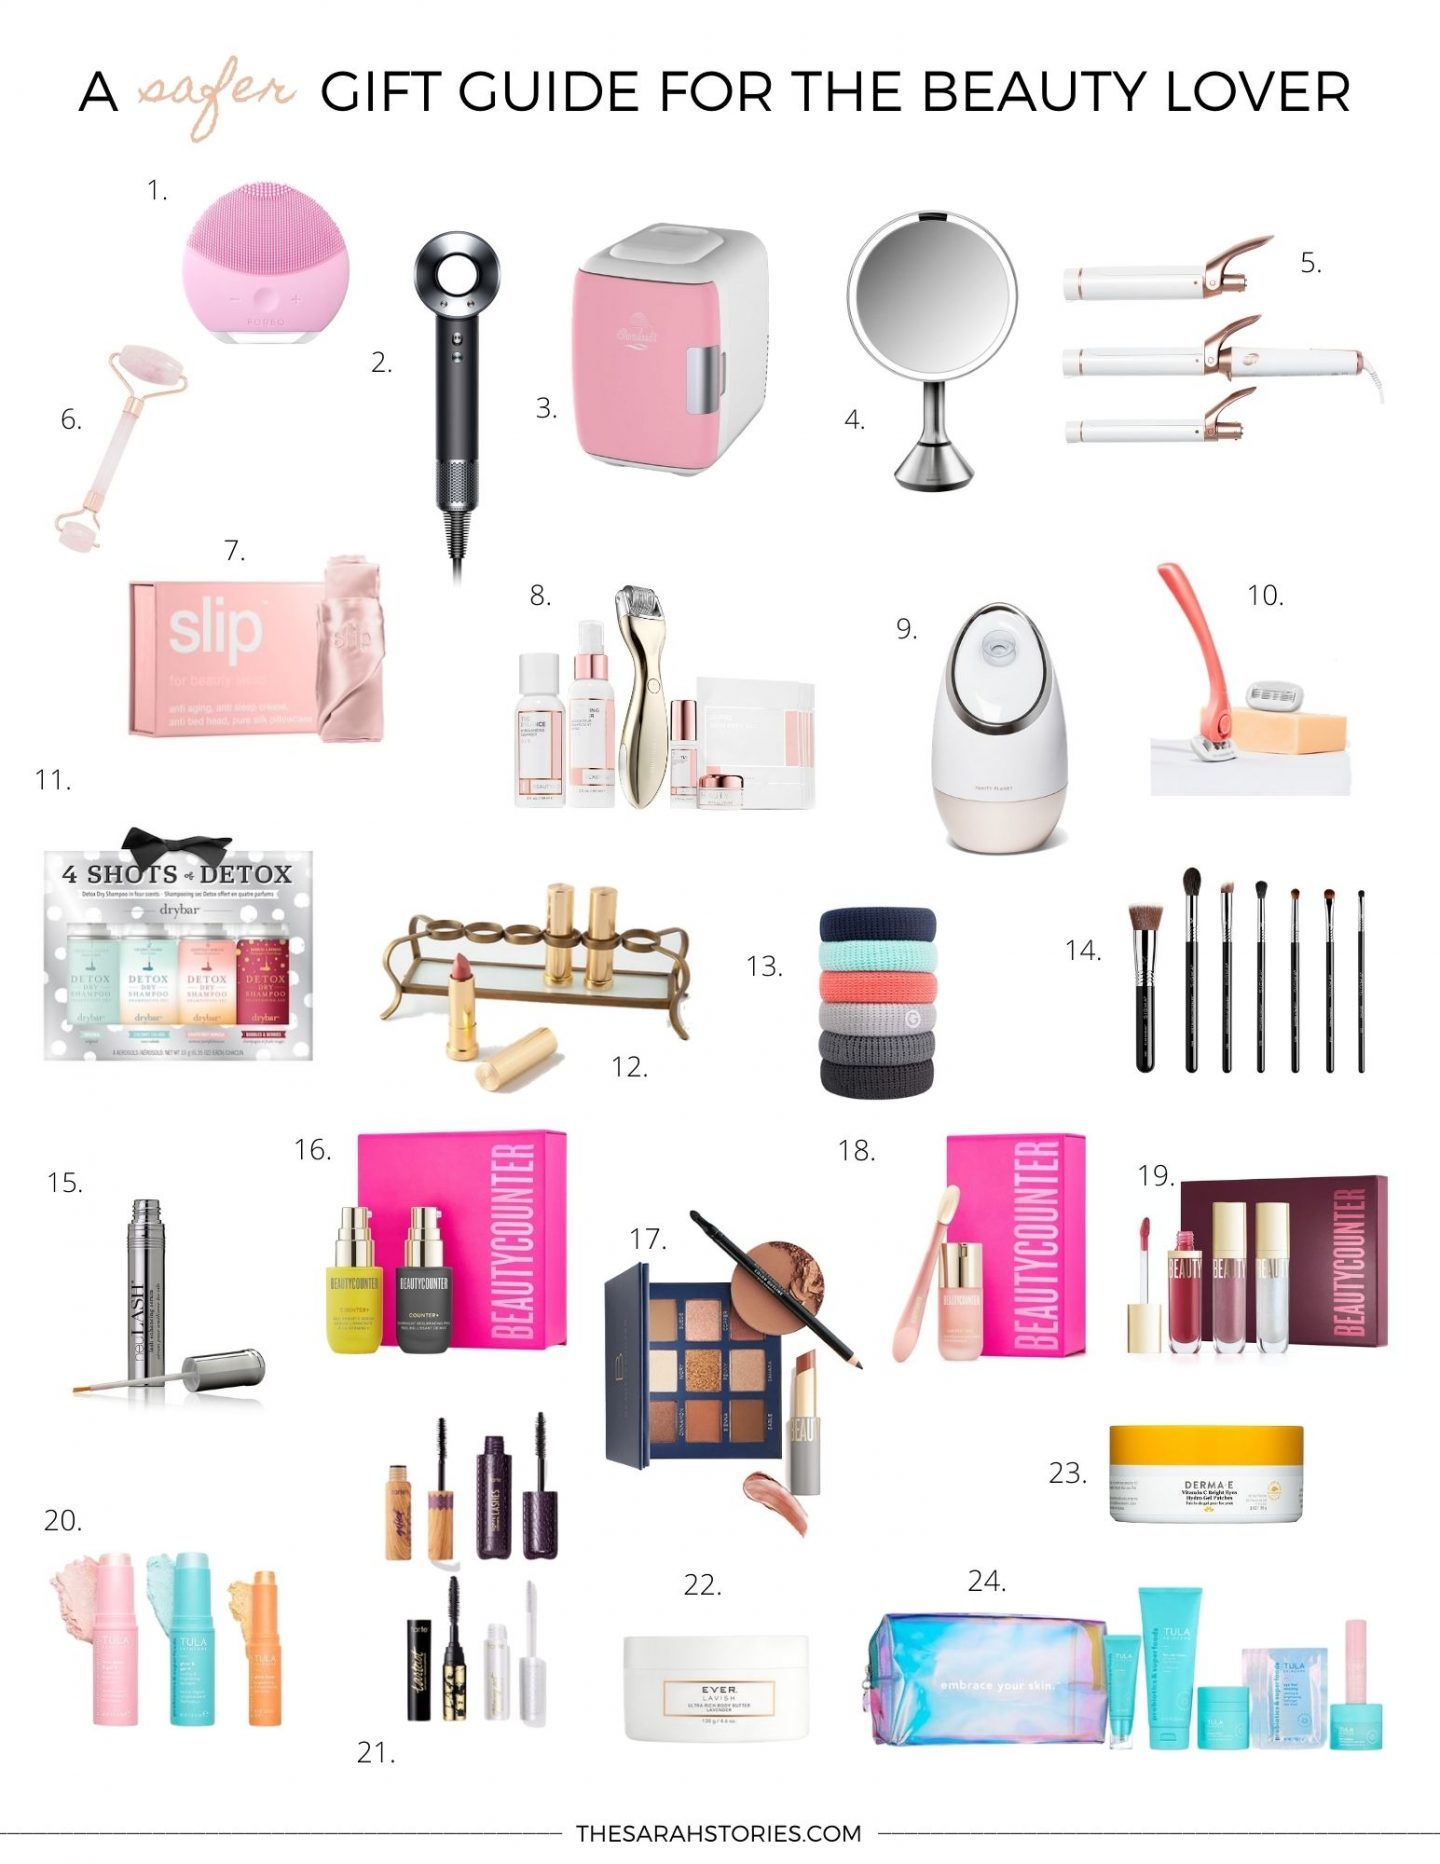 A safer gift guide for the beauty lover